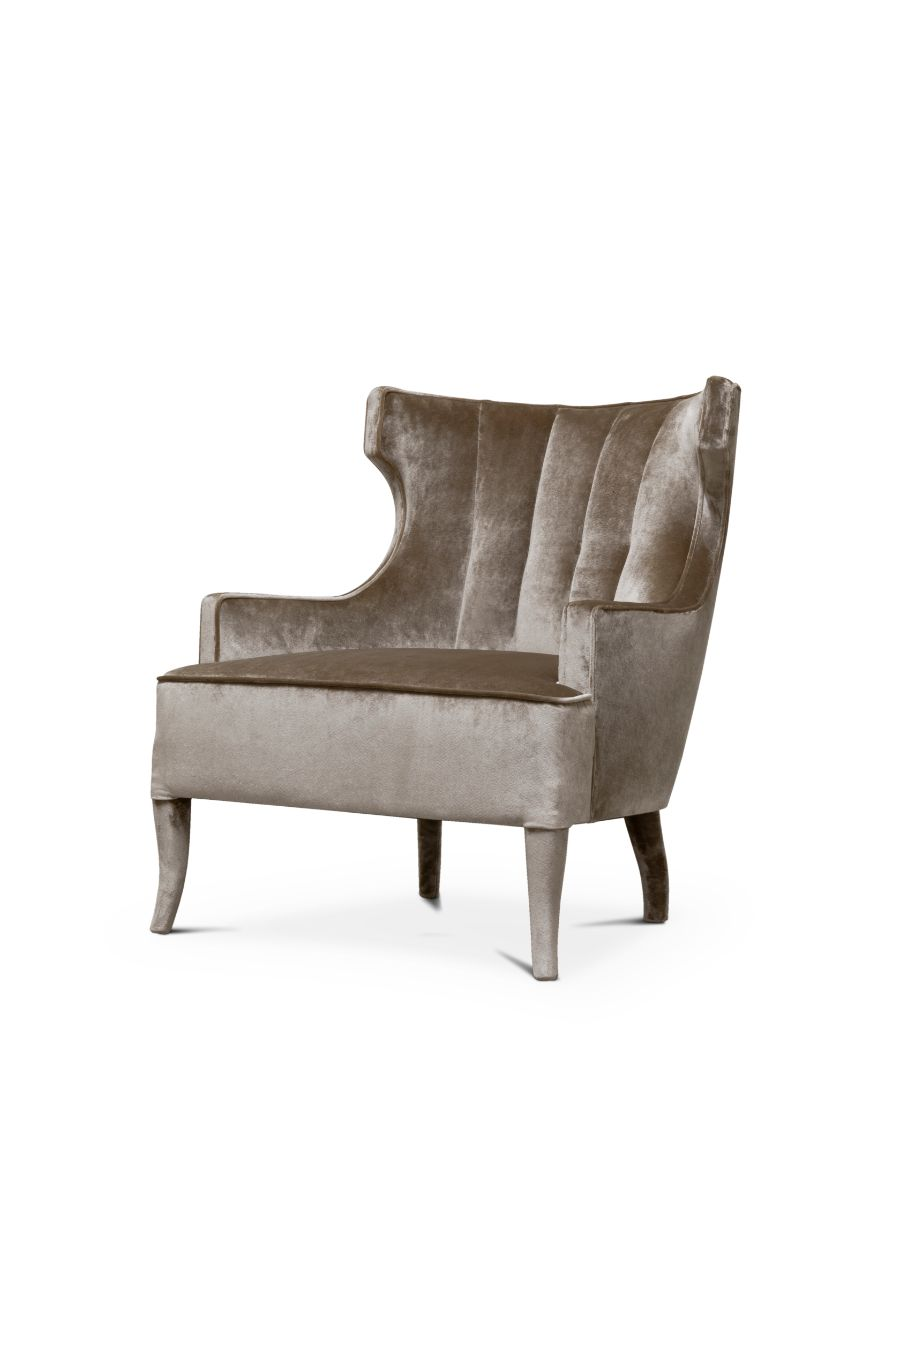 Upholstery Inspiration: 25 Armchairs That Will Leave You Breathless upholstery inspiration Upholstery Inspiration: 25 Armchairs That Will Leave You Breathless Upholstery Inspiration 25 Armchairs That Will Leave You Breathless 7